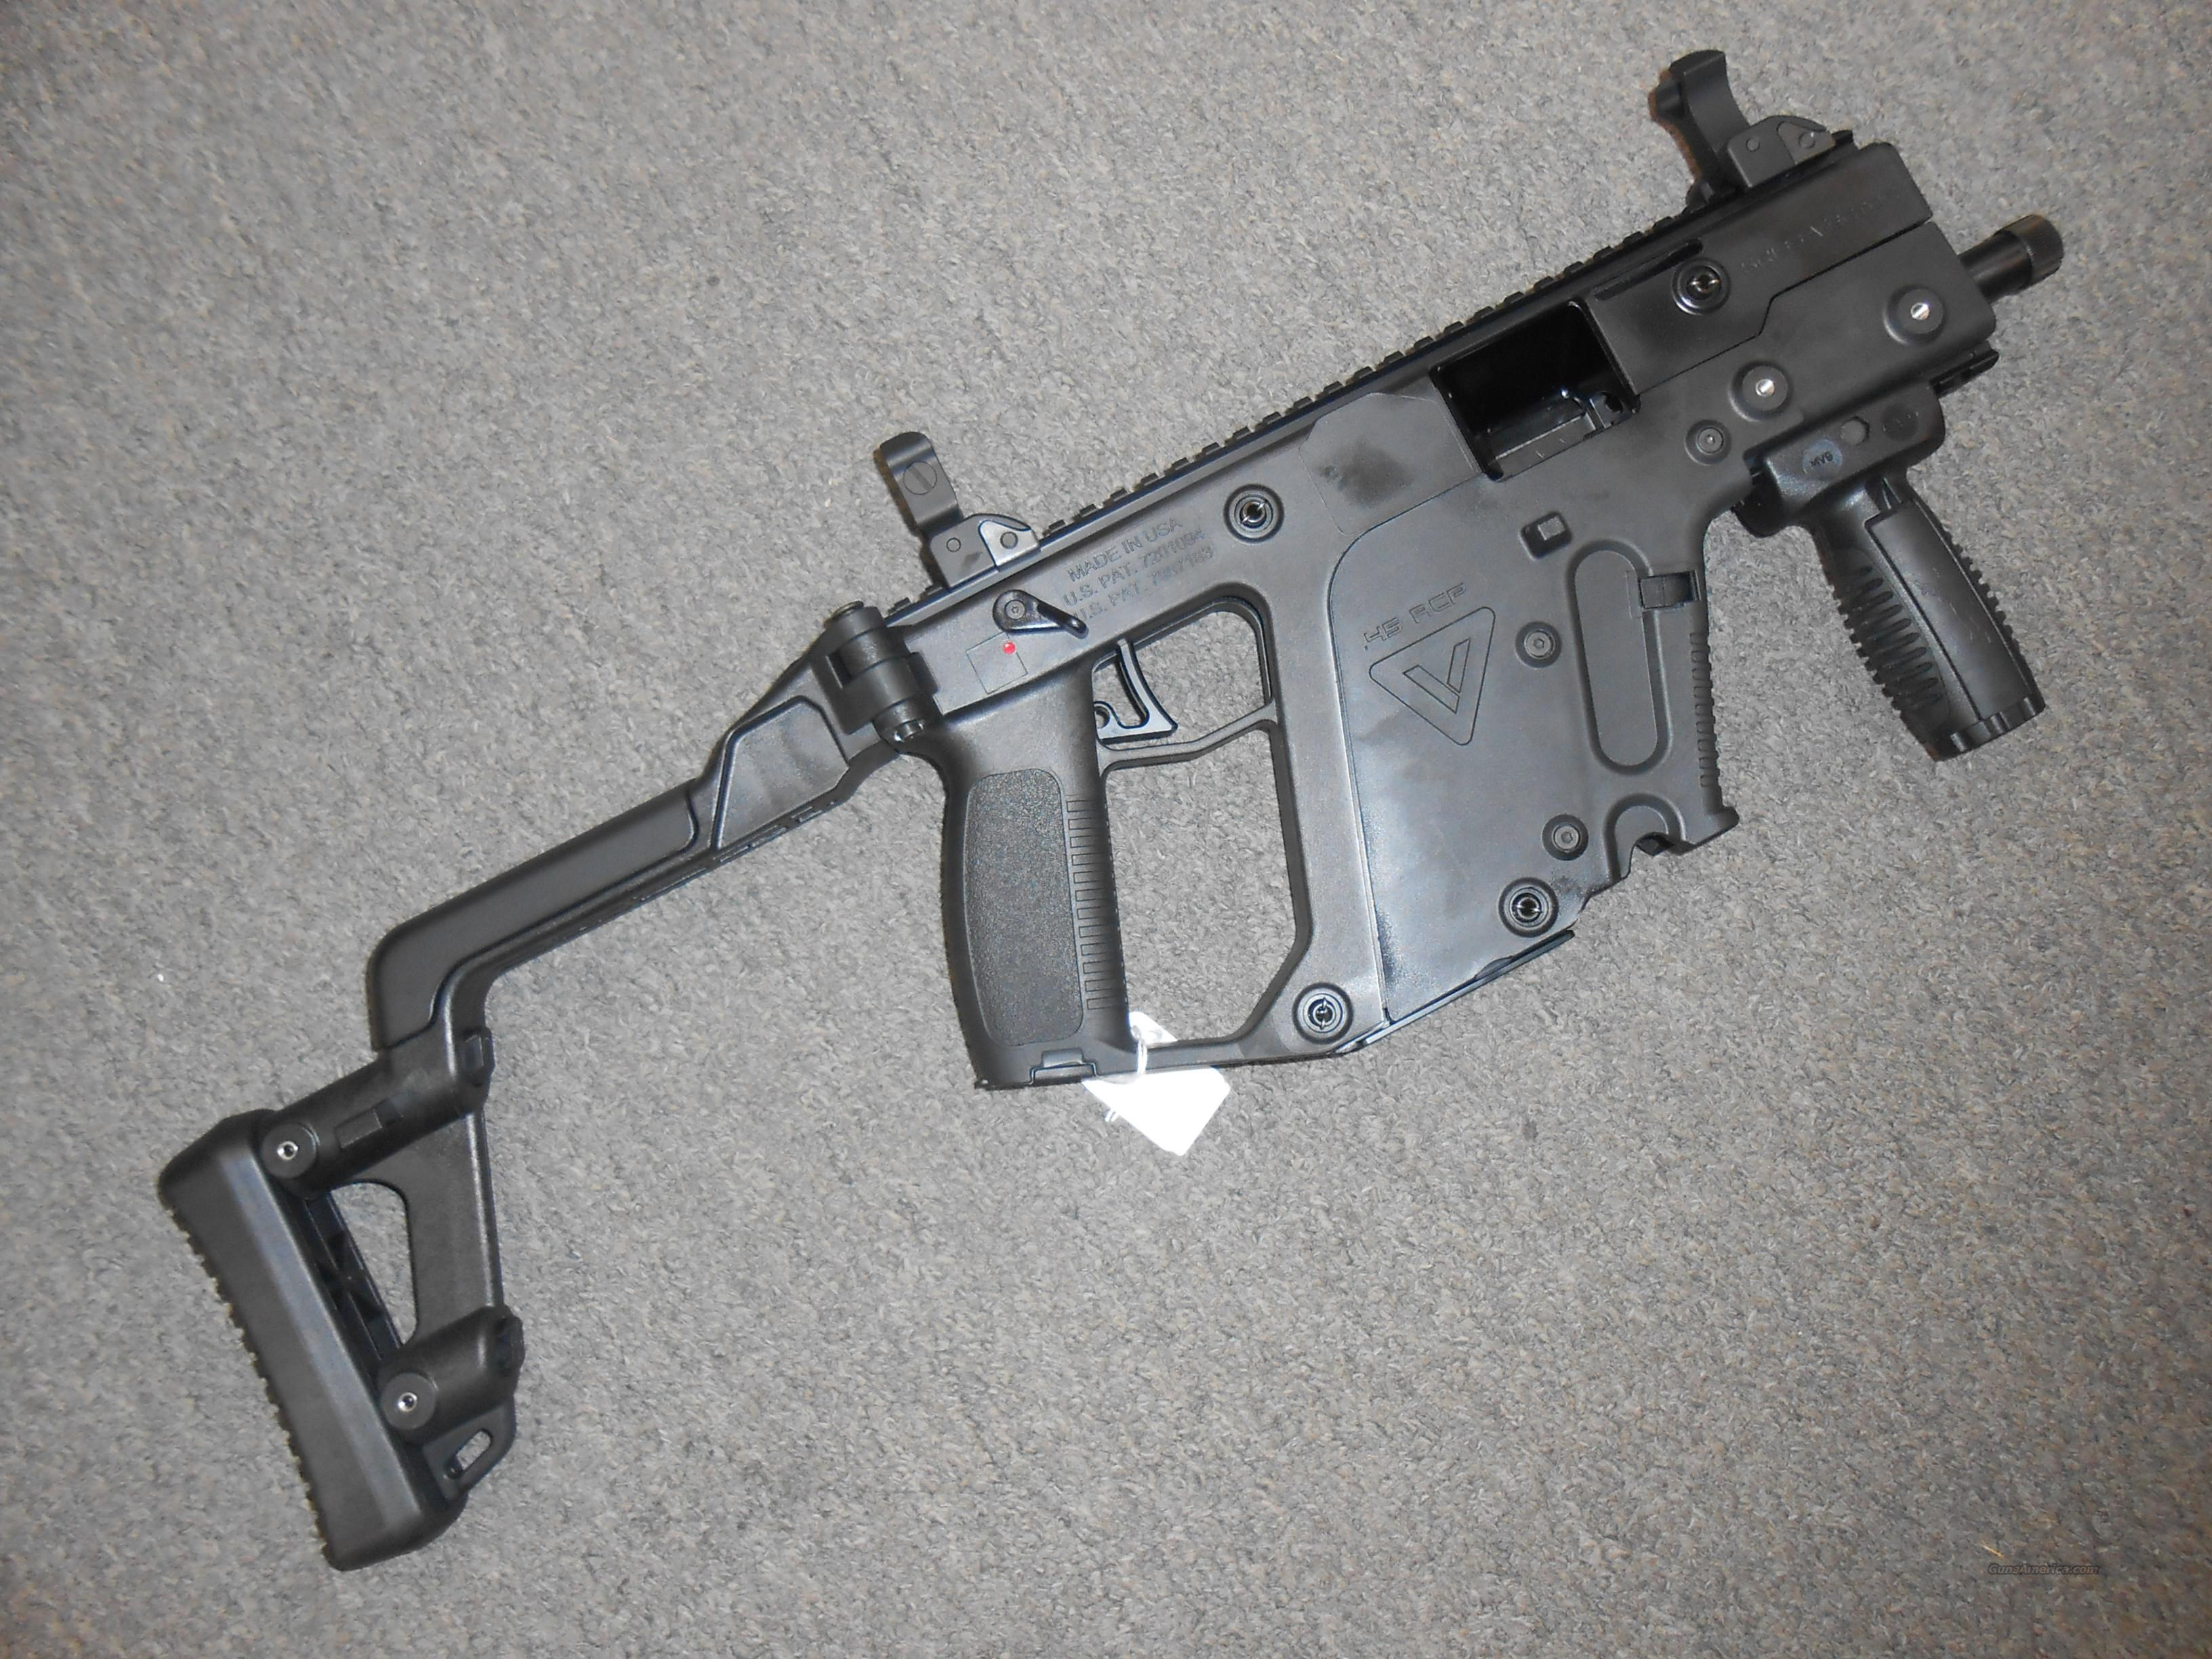 Kriss Vector SBR 45acp 5.5 NO CC Fees  Guns > Rifles > Kriss Tactical Rifles